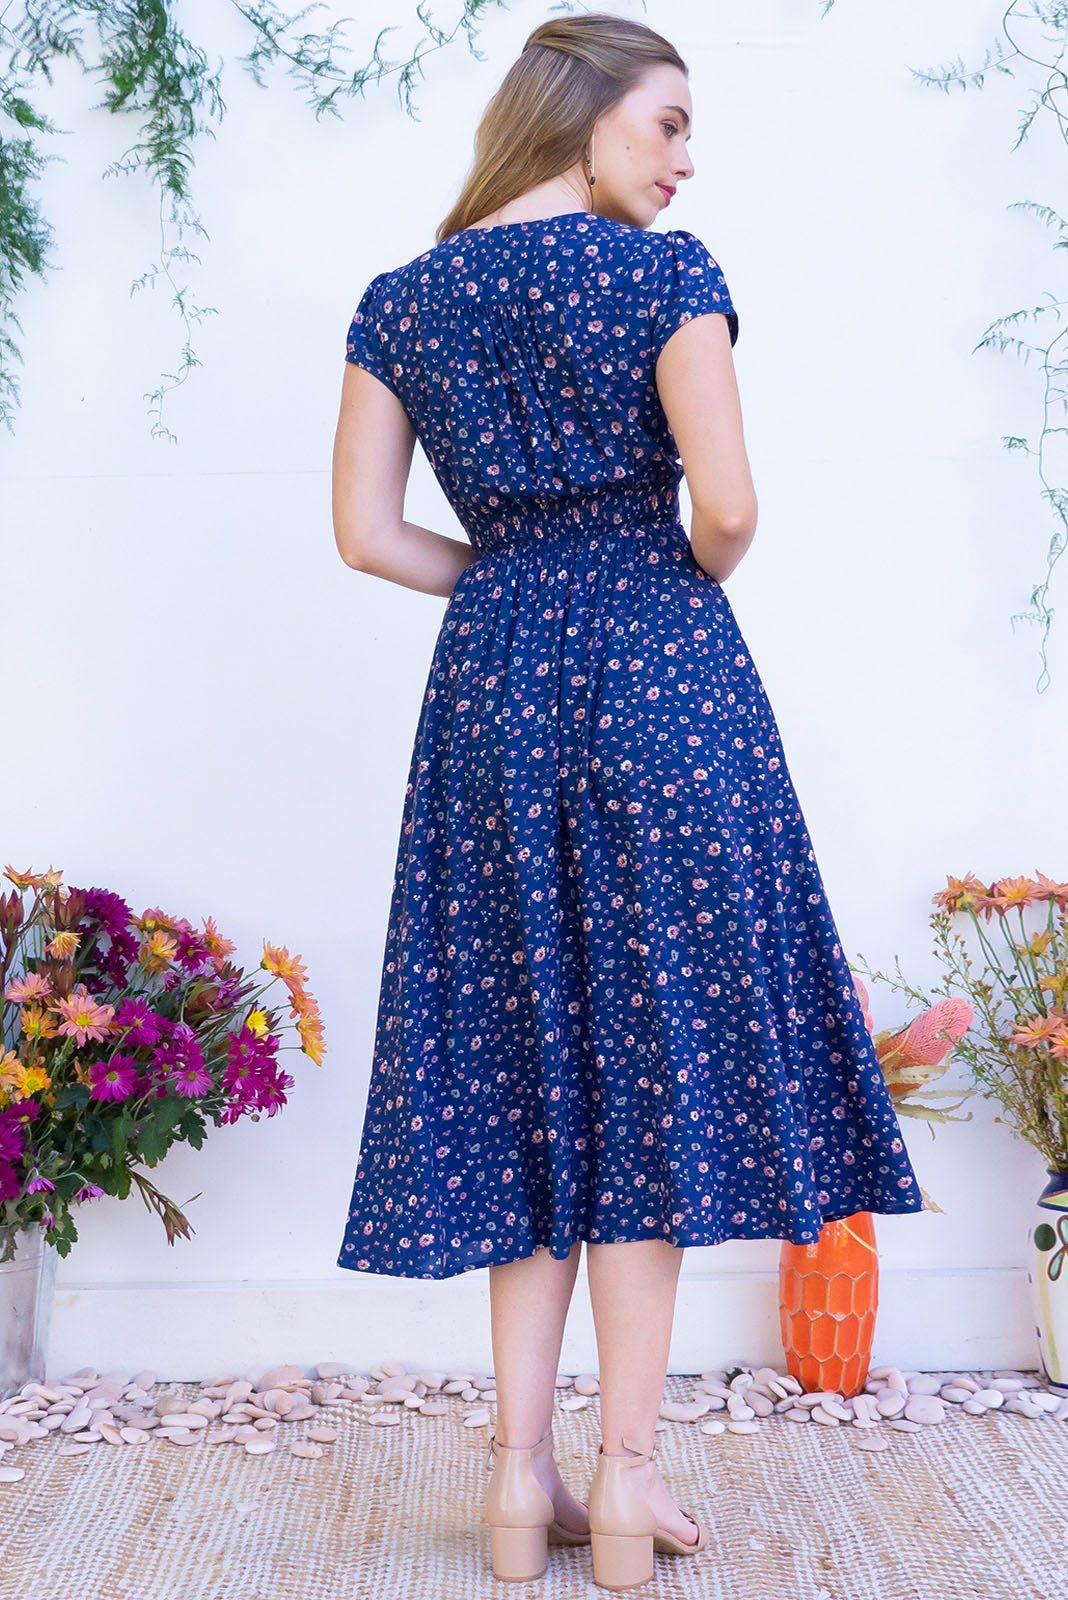 Lizzie Secret Blue Midi dress features a vintage inspired fitted basque waist and elasticated waist with a cap sleeve and deep v neck the fabric is a soft woven rayon in a soft navy floral watercolour print